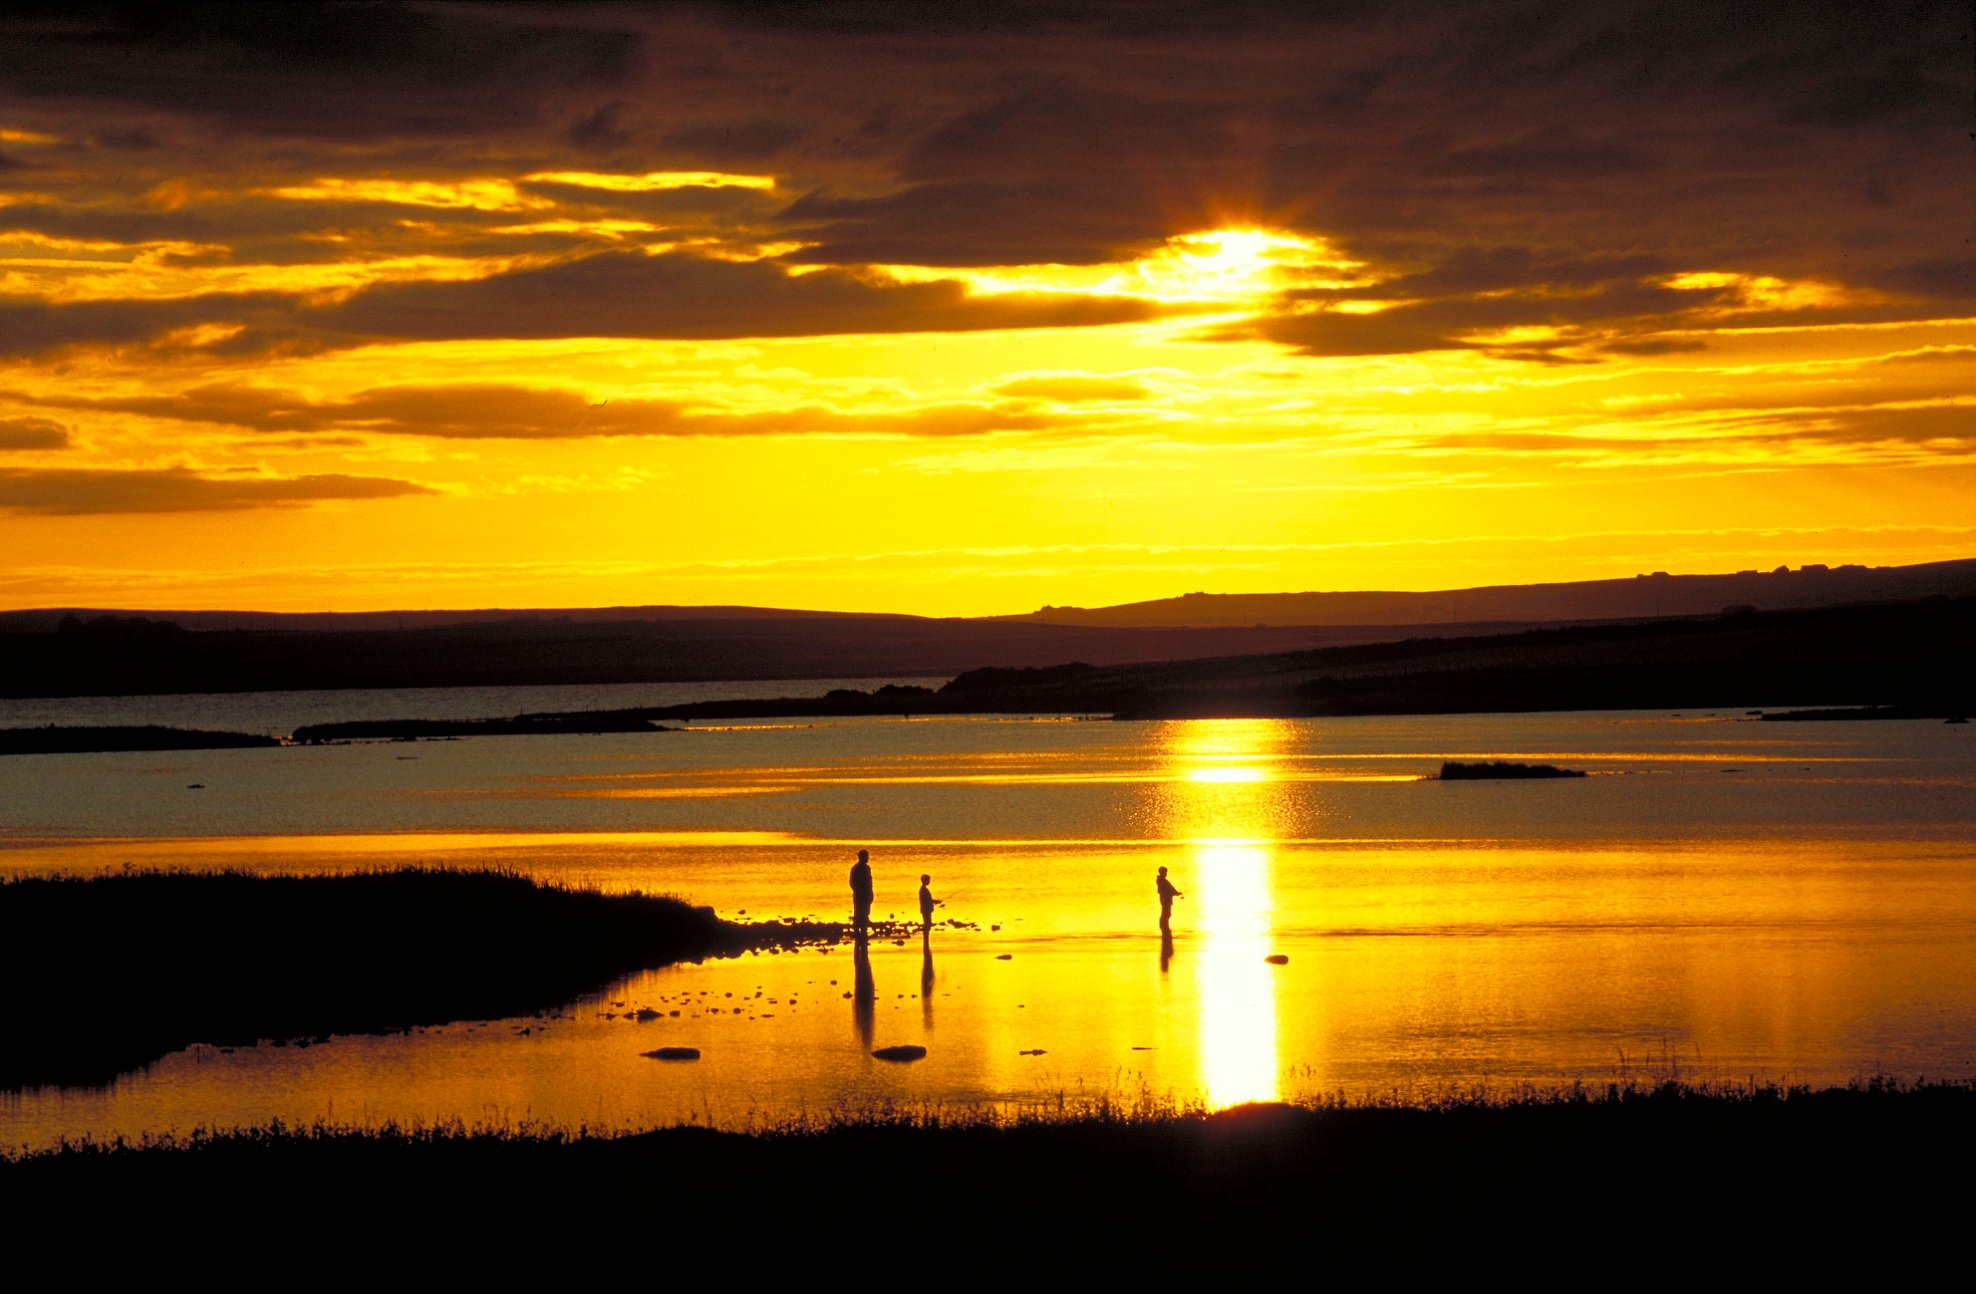 Fishing on the Harray Loch in Orkney - image by VisitScotland/Iain Sarjeant